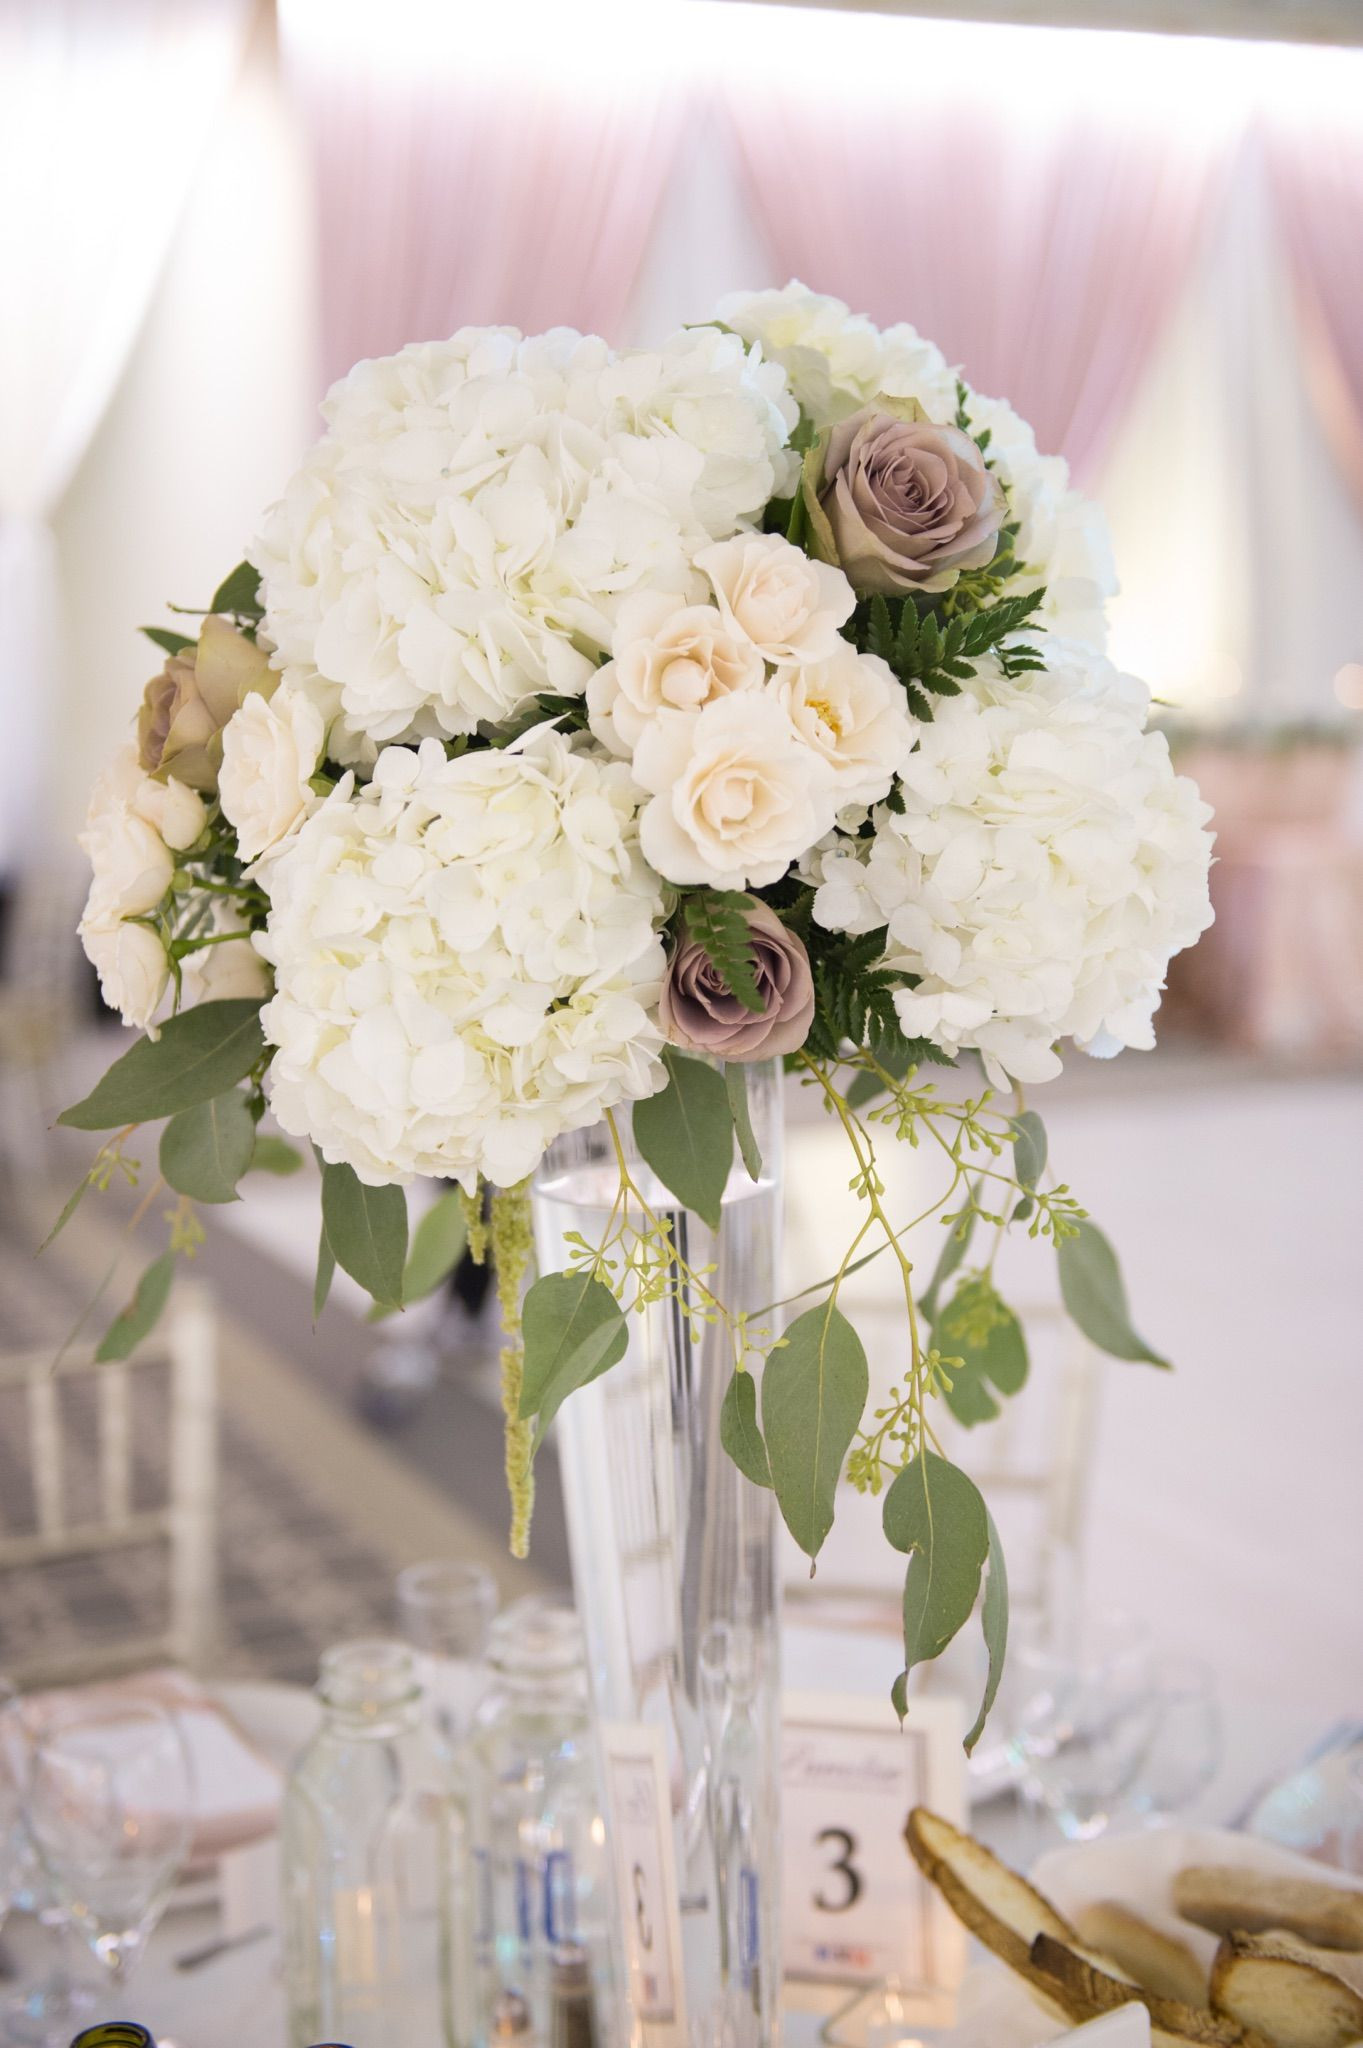 pilsner vase centerpiece ideas of wedding centrepiece for wedding at paradise banquet hall including pertaining to wedding centrepiece for wedding at paradise banquet hall including lavender and amnesia roses ivory